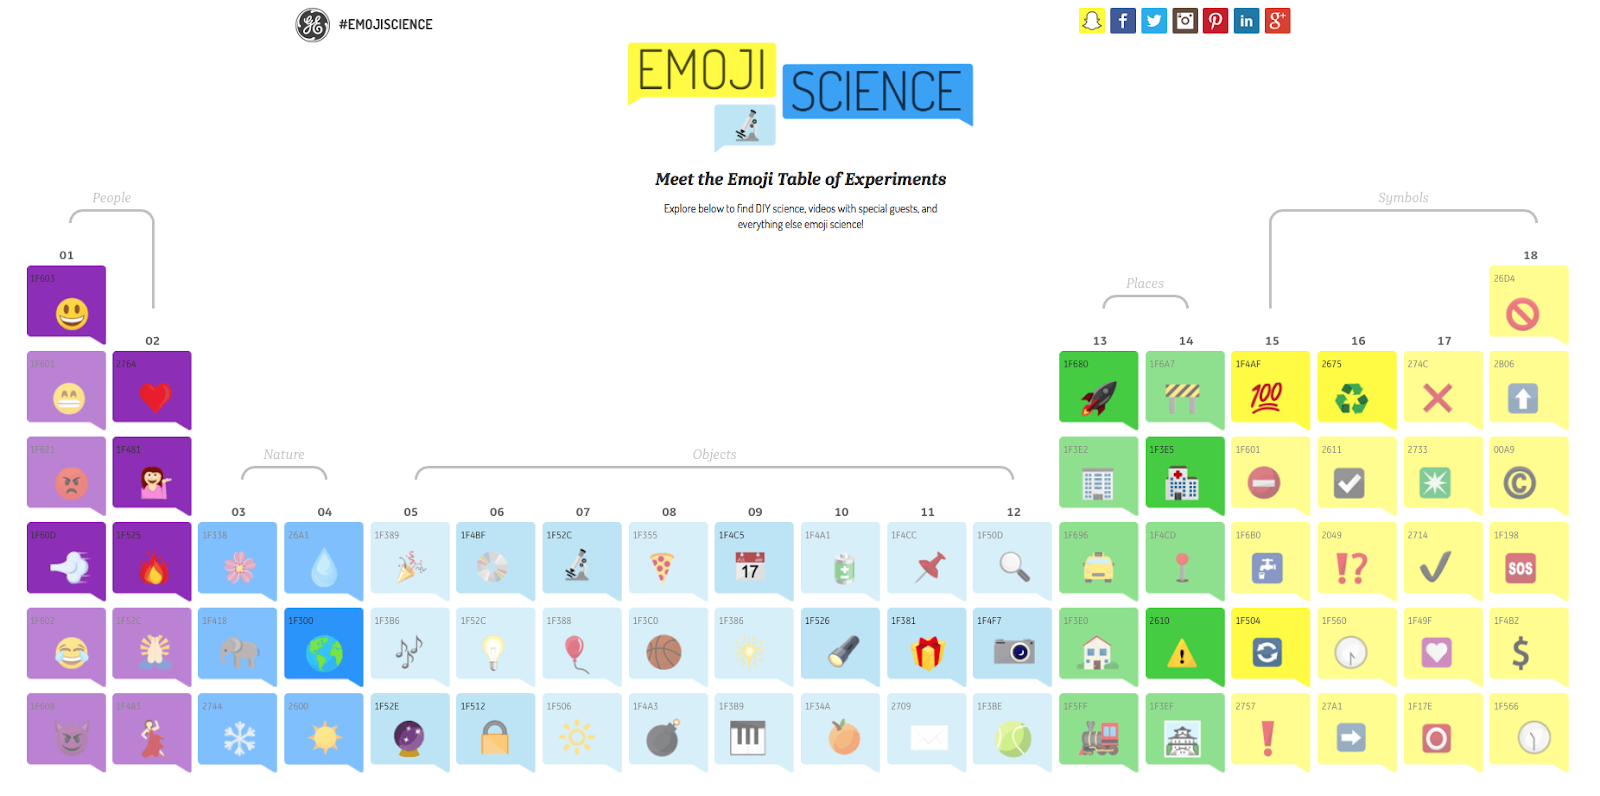 Emoji Table of Experiments, Emojis, General Electric, Webtexto content marketing conteúdo marketing digital